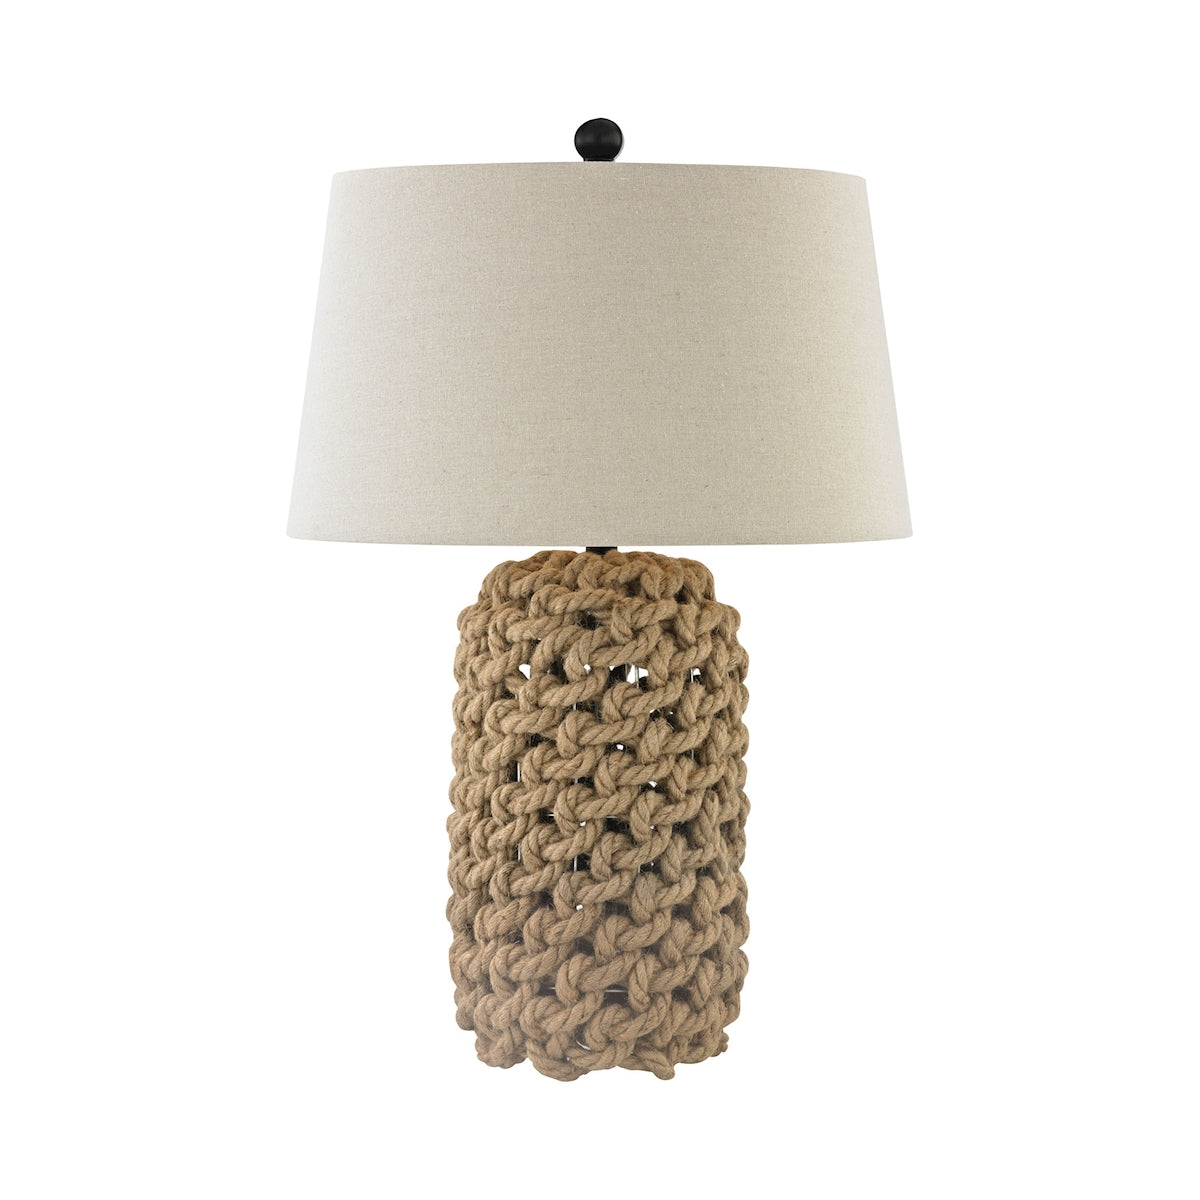 Natural Rope Table Lamp